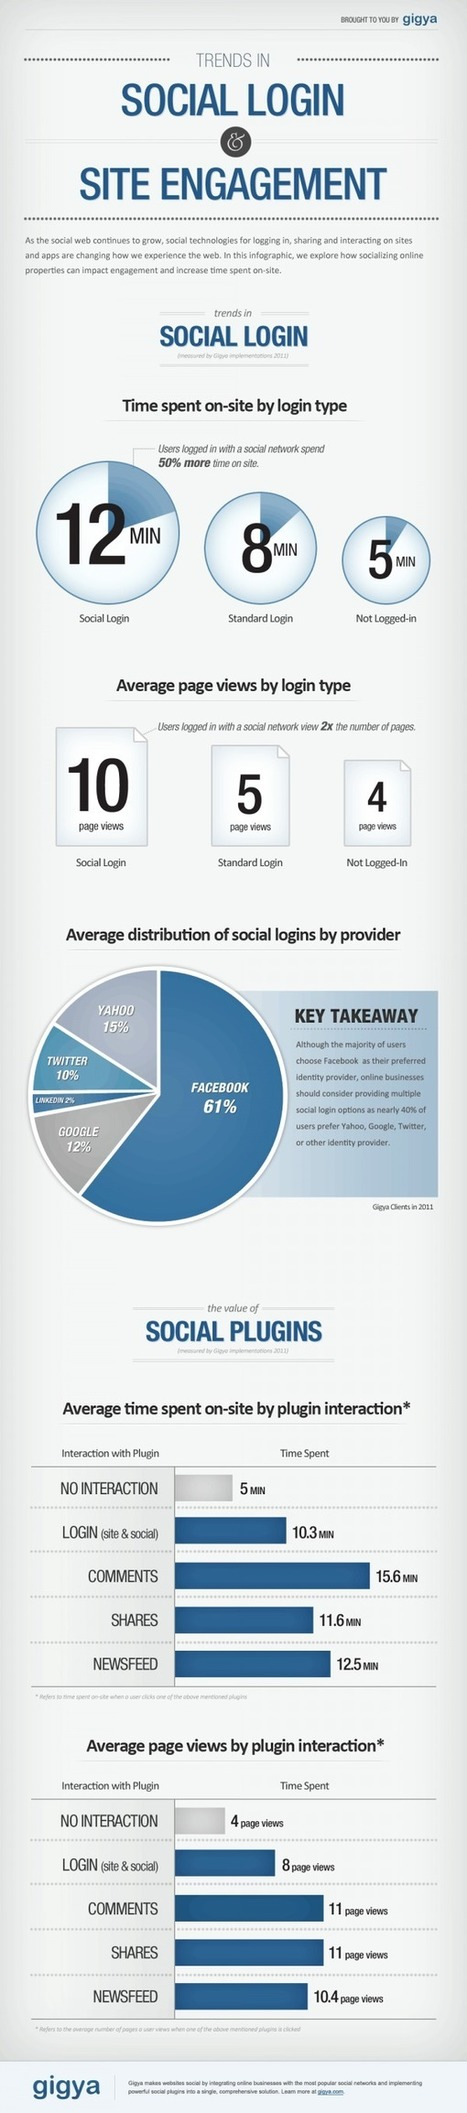 Social Login and Social Plugins Increase Page Views / Time Spent On Site [Infographic] | Startup Revolution | Scoop.it